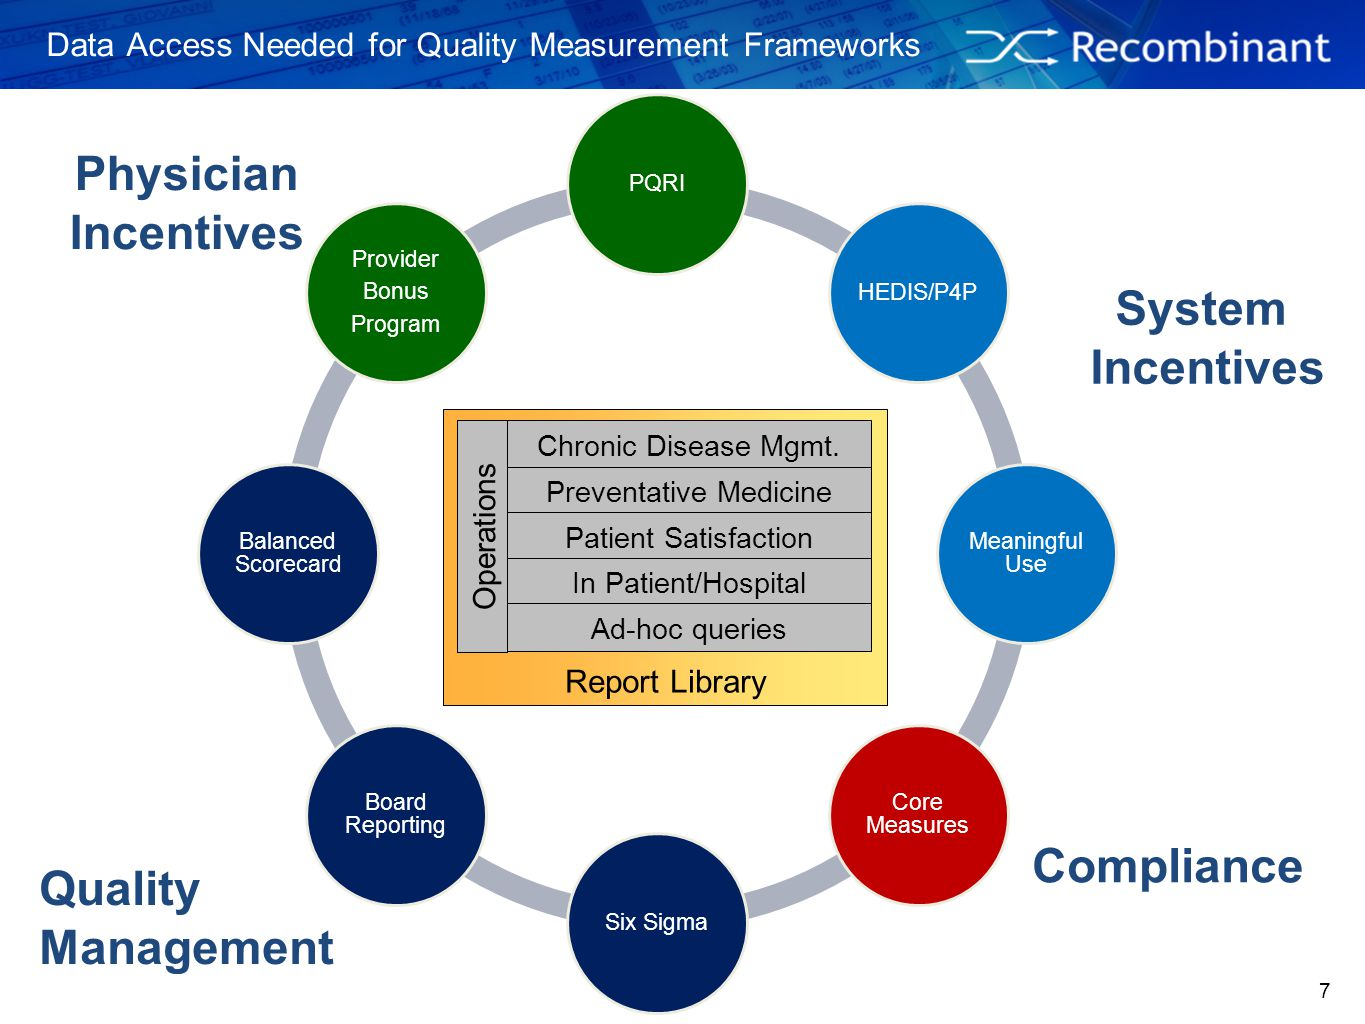 Data Access Needed for Quality Measurement Frameworks